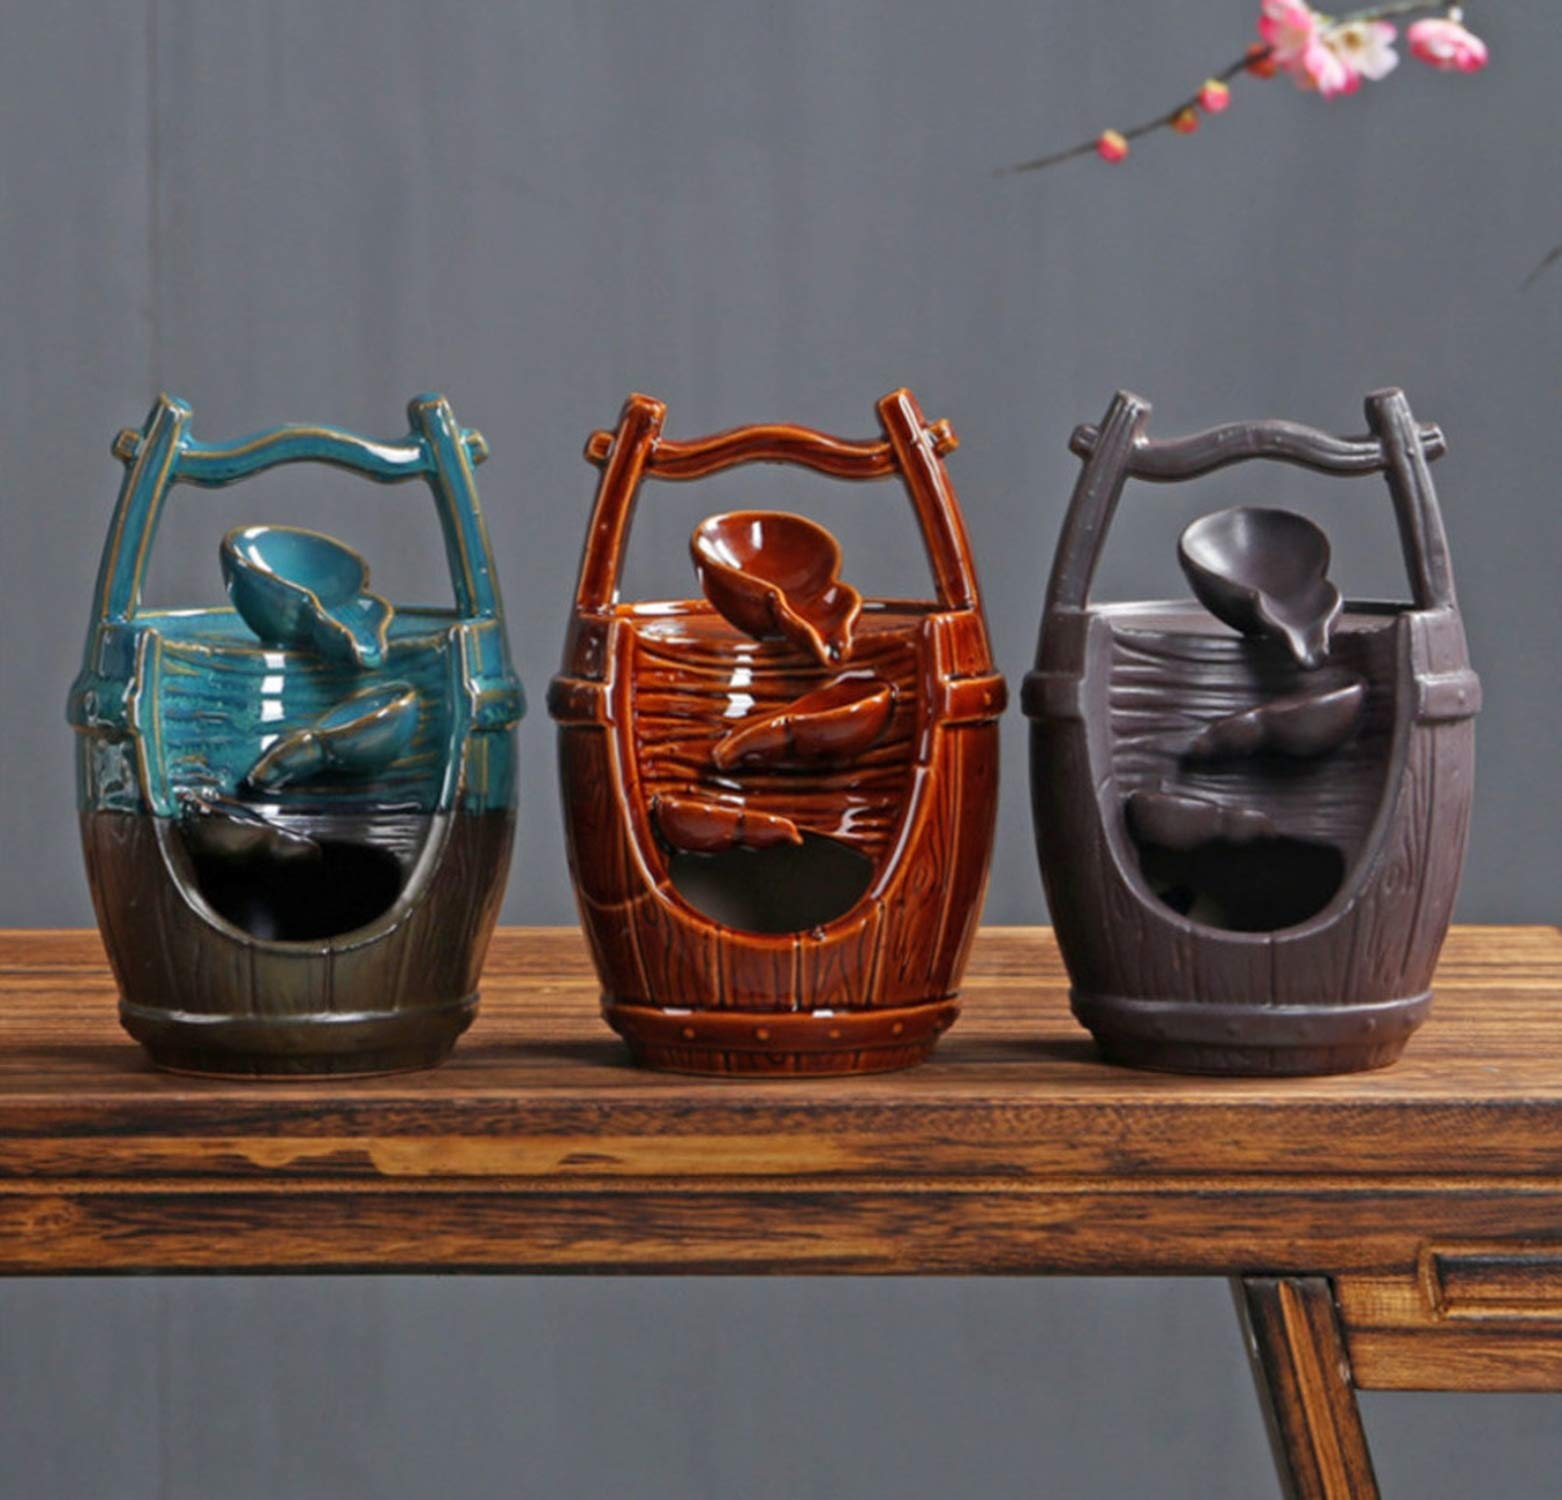 Ceramic Handicraft Ornaments Waterfall Backflow Incense Burner Home Office Decor Incense Censer Holder +20pcs Incense Cones,with 20pcs Mixed-B by Deep Palpitation incense holders (Image #4)